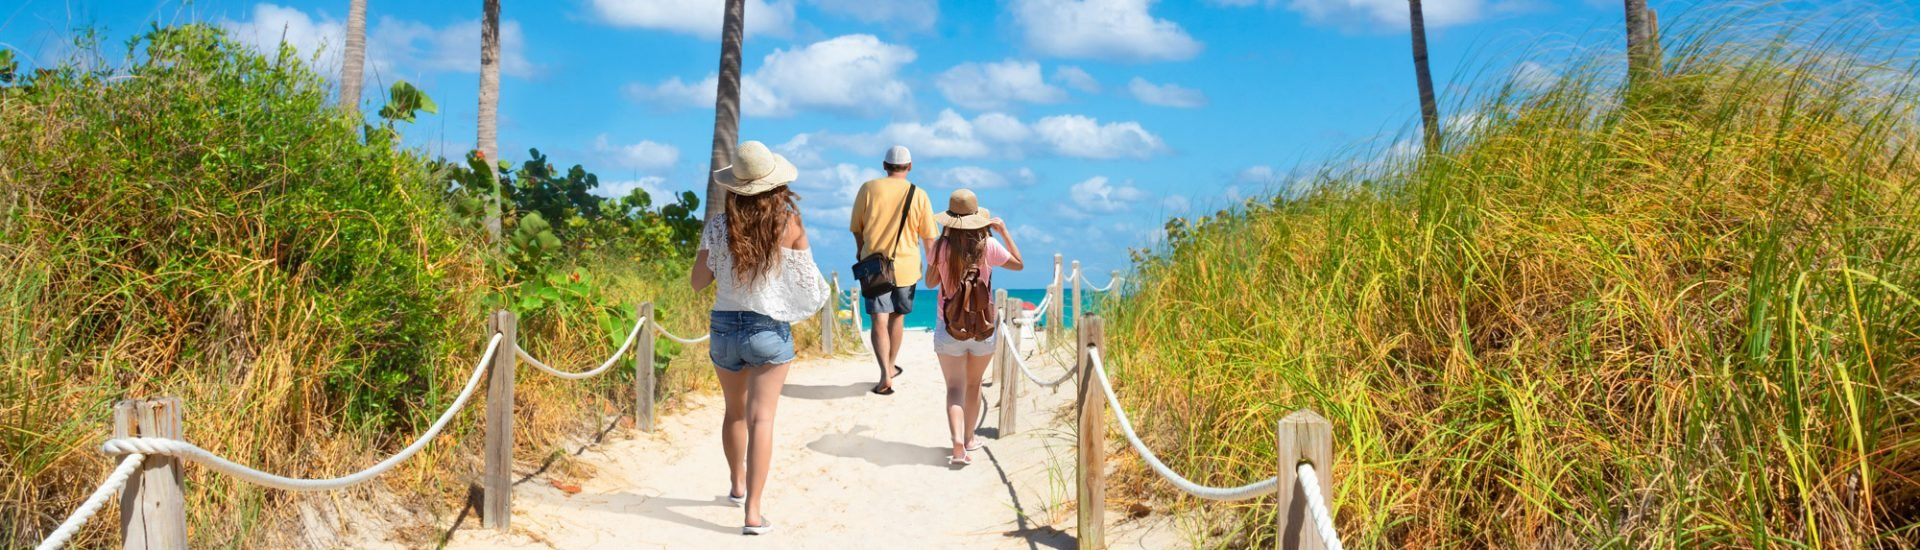 Beaches are among the many unexpected fun things to do in Orlando Florida which is why we have listed many unique things to do in Orlando.